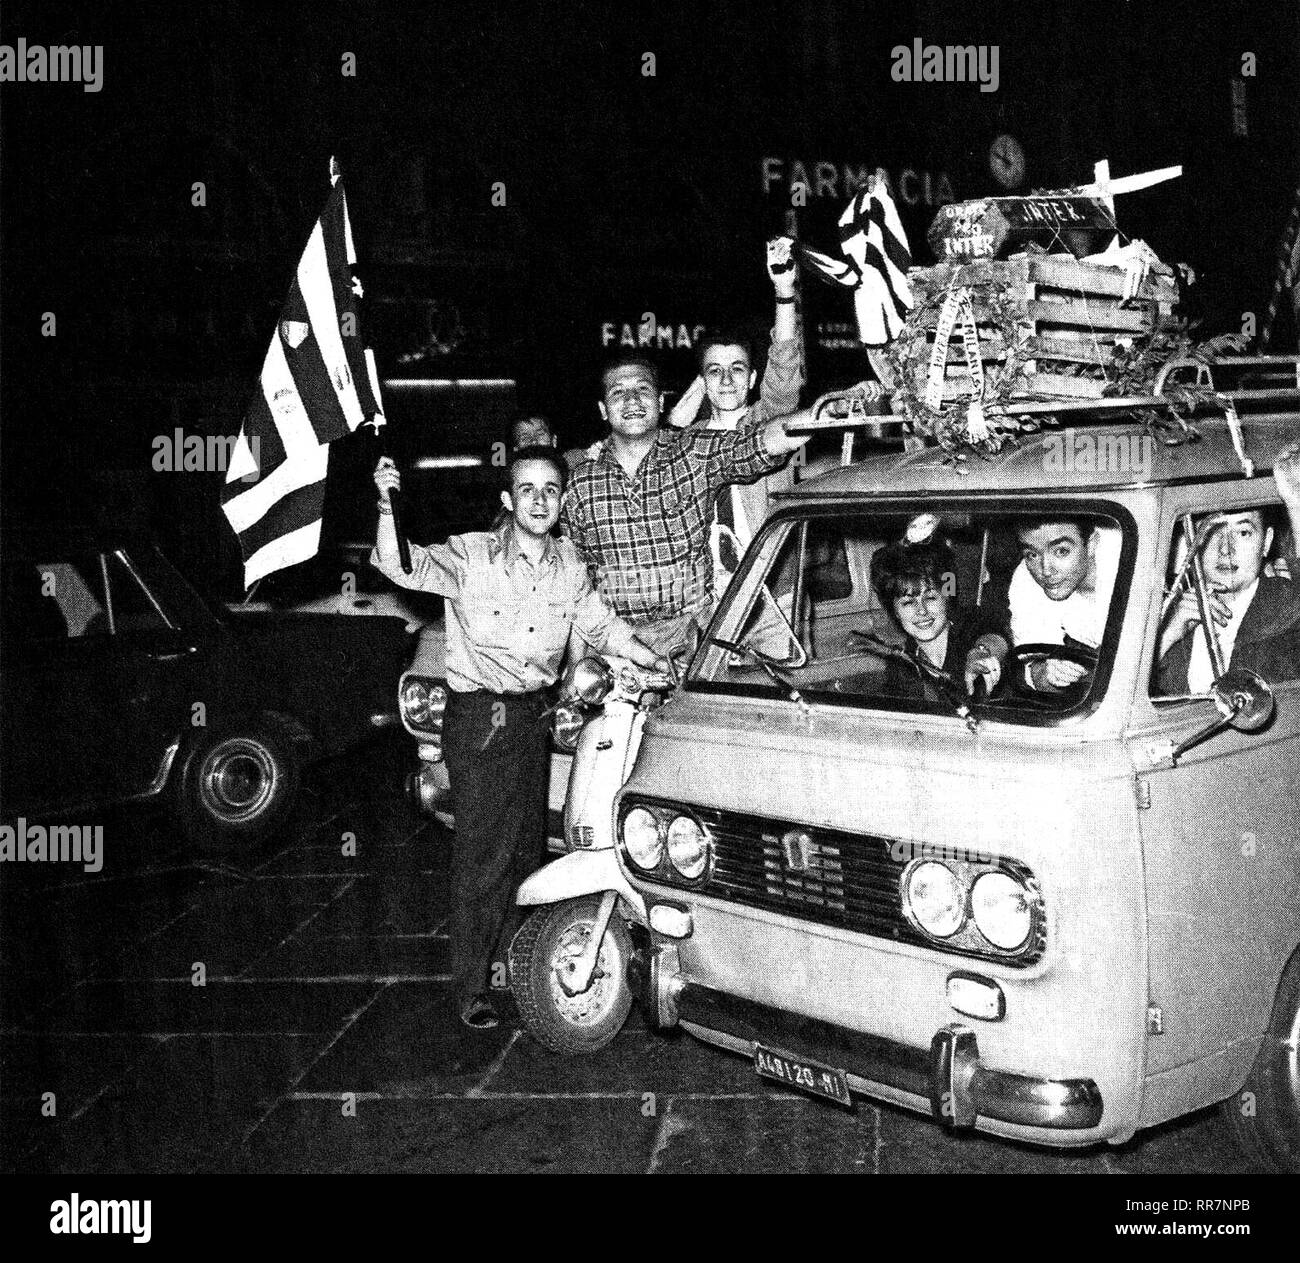 Milan (Italy), June 1, 1967  Milanese supporters of Juventus F C